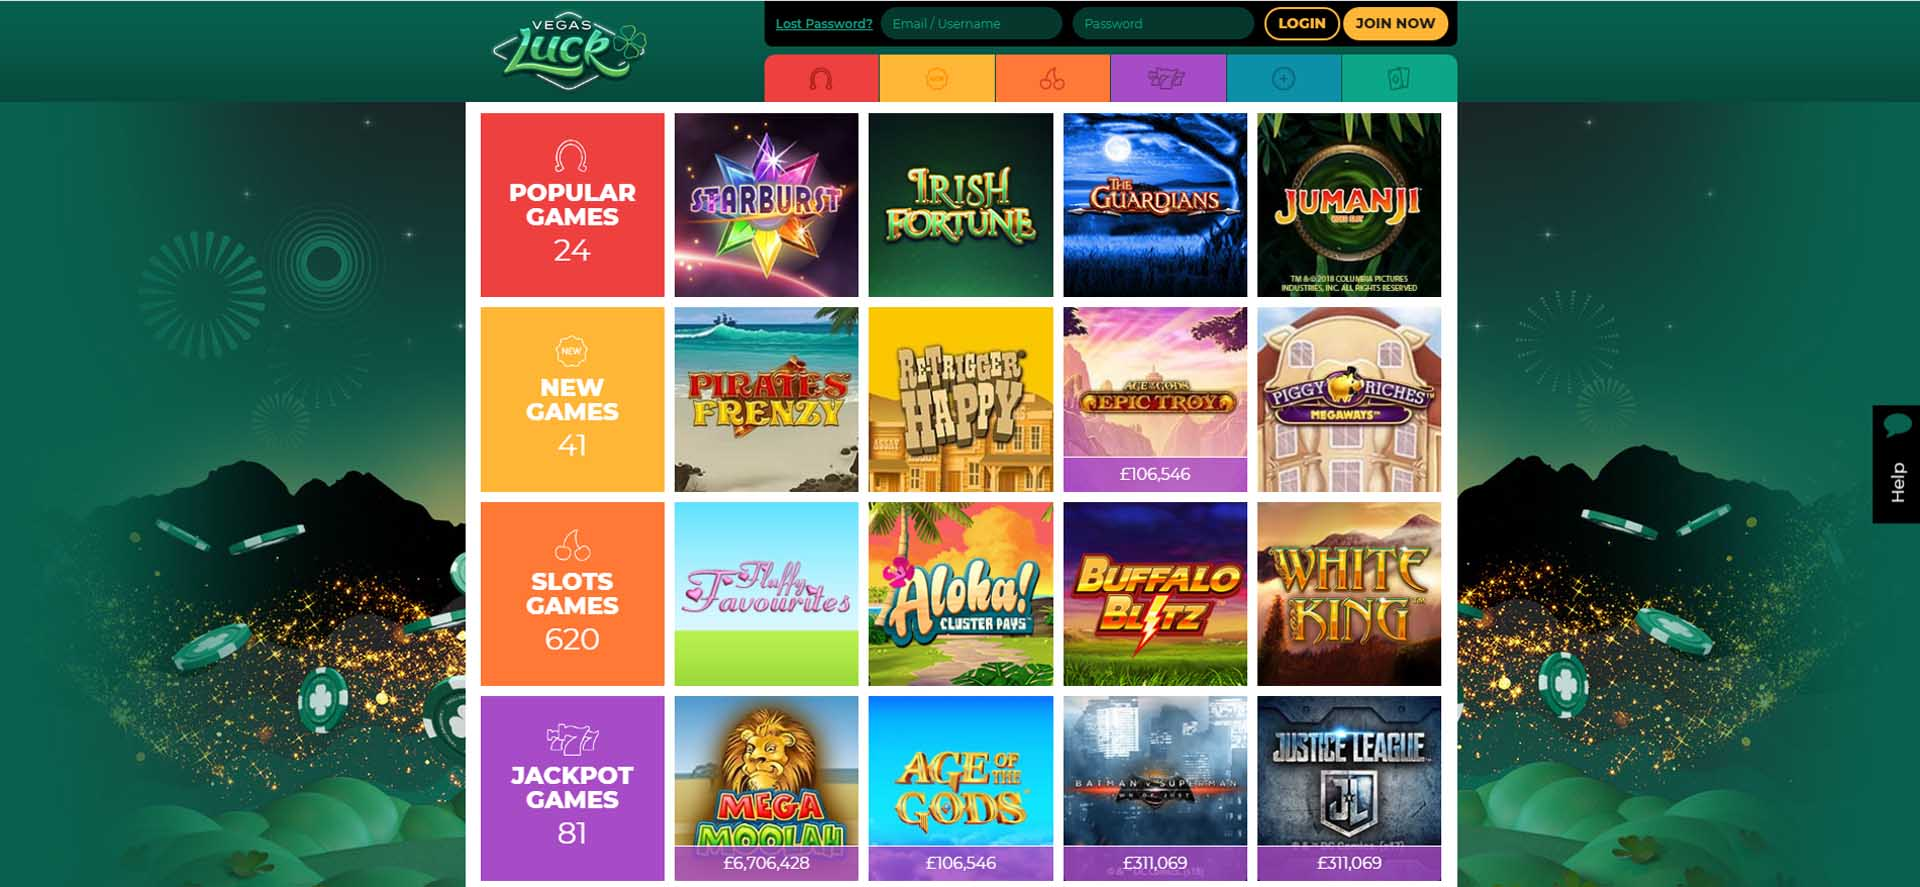 Vegas Luck Online Casino Review and Bonus - AboutSlots